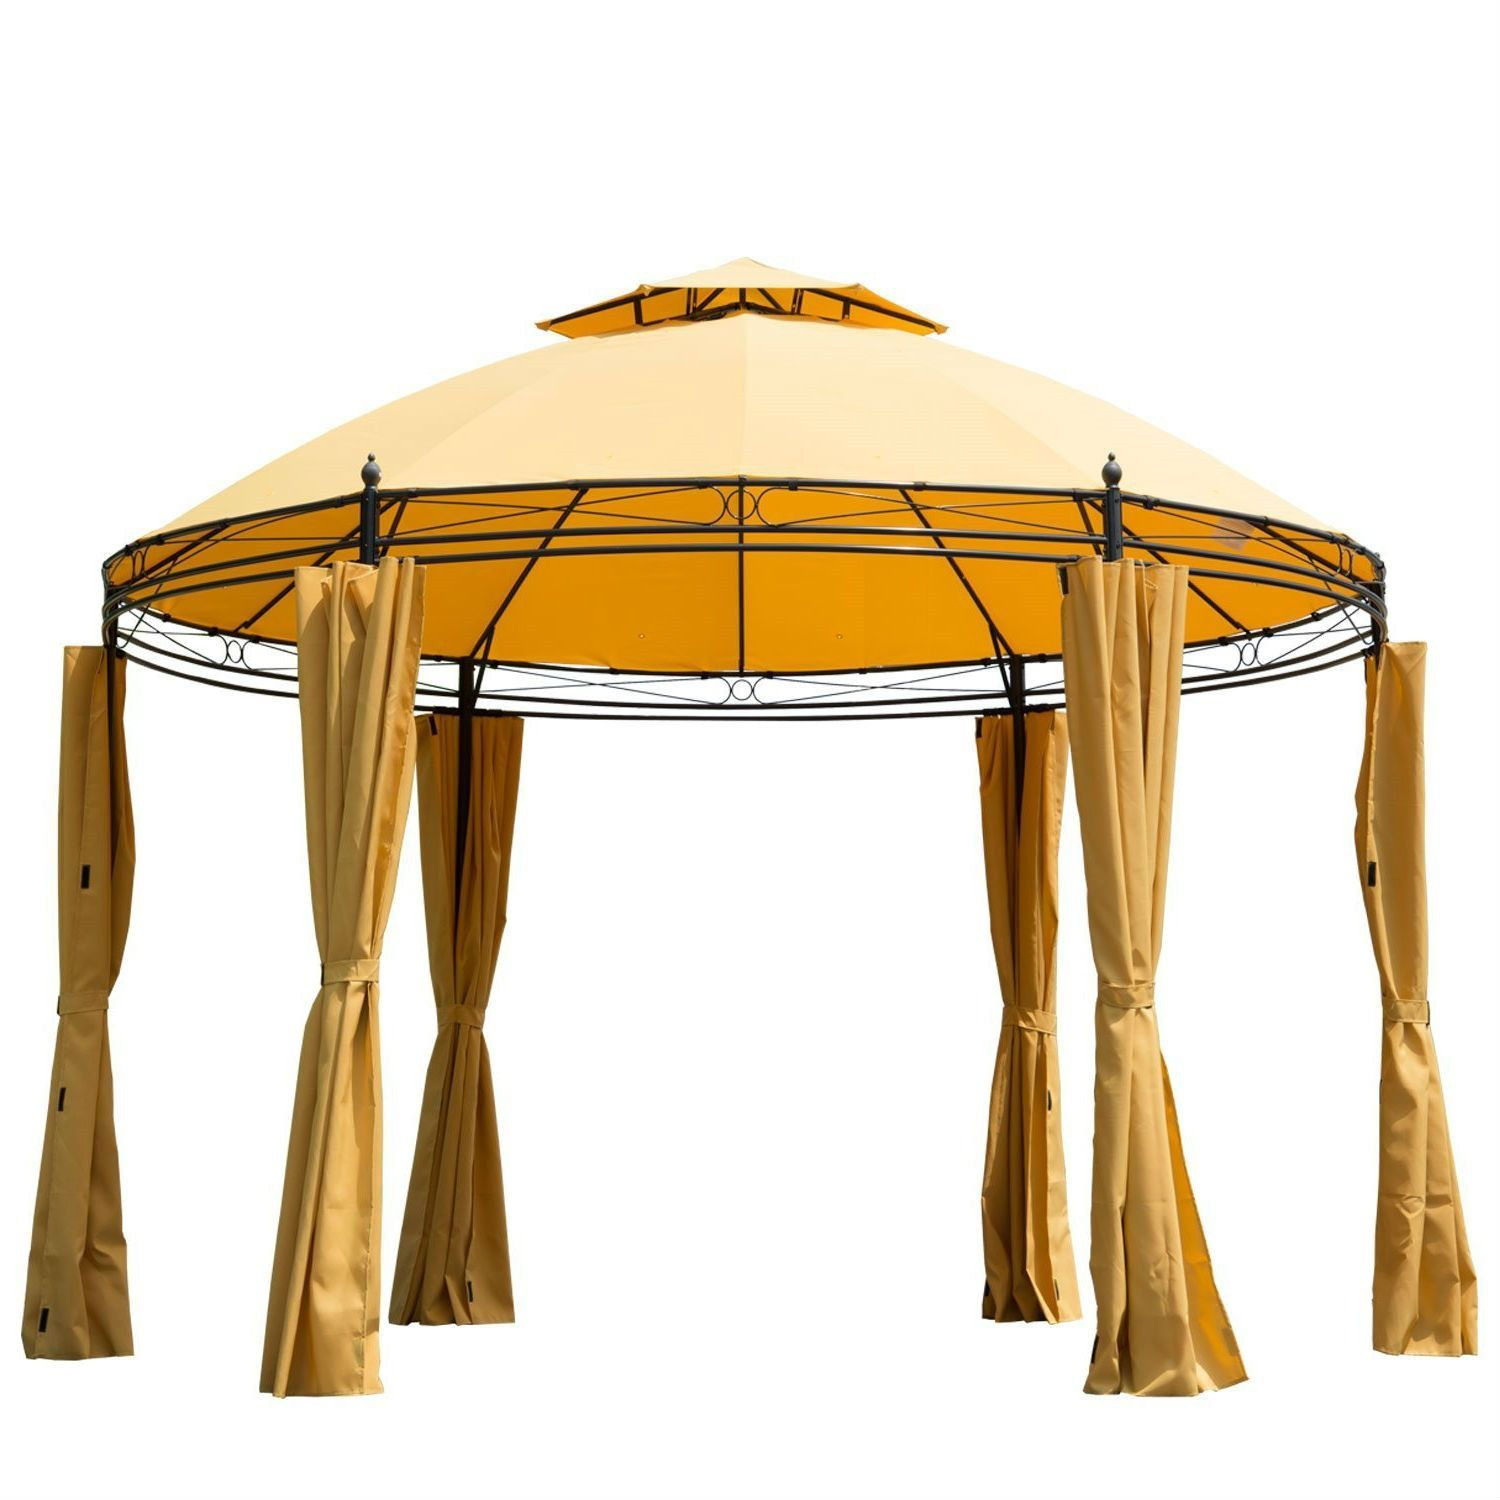 11ft Yellow Orange Steel Outdoor Patio Gazebo Canopy with